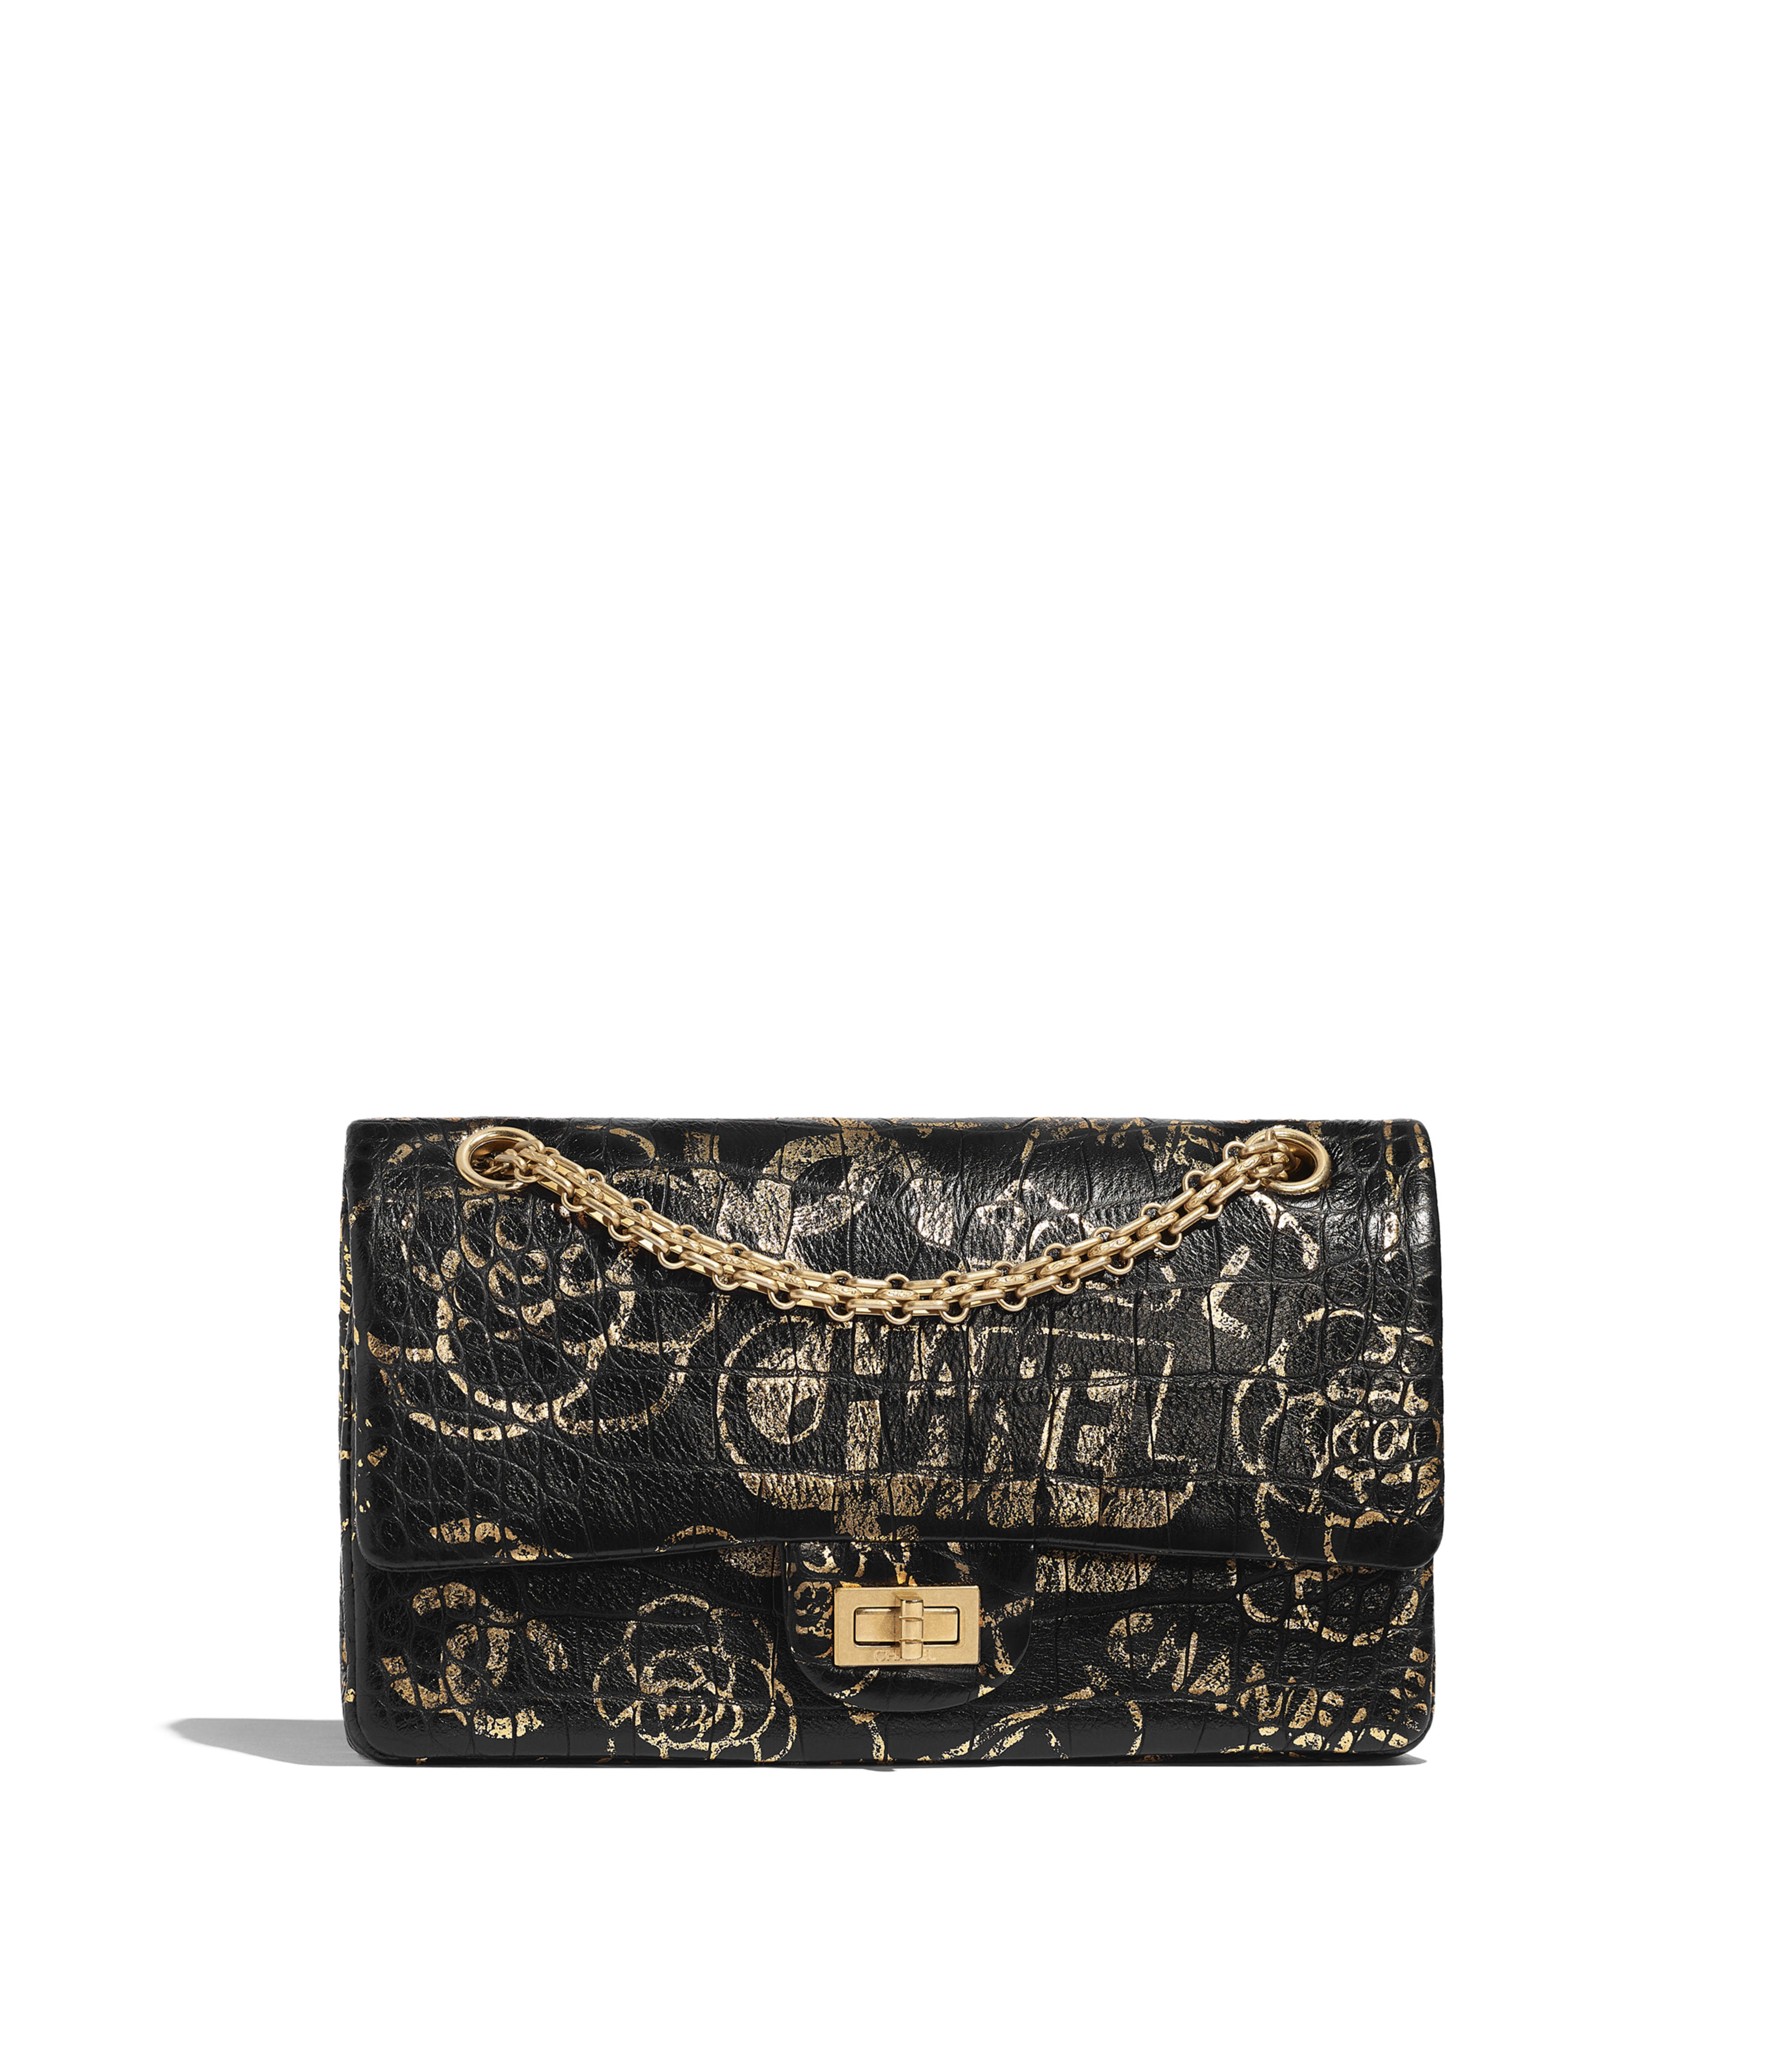 be08b2e33bb5 2.55 Handbag Crocodile Embossed Printed Leather & Gold-Tone Metal, Black &  Gold Ref. A37586B00979N0784